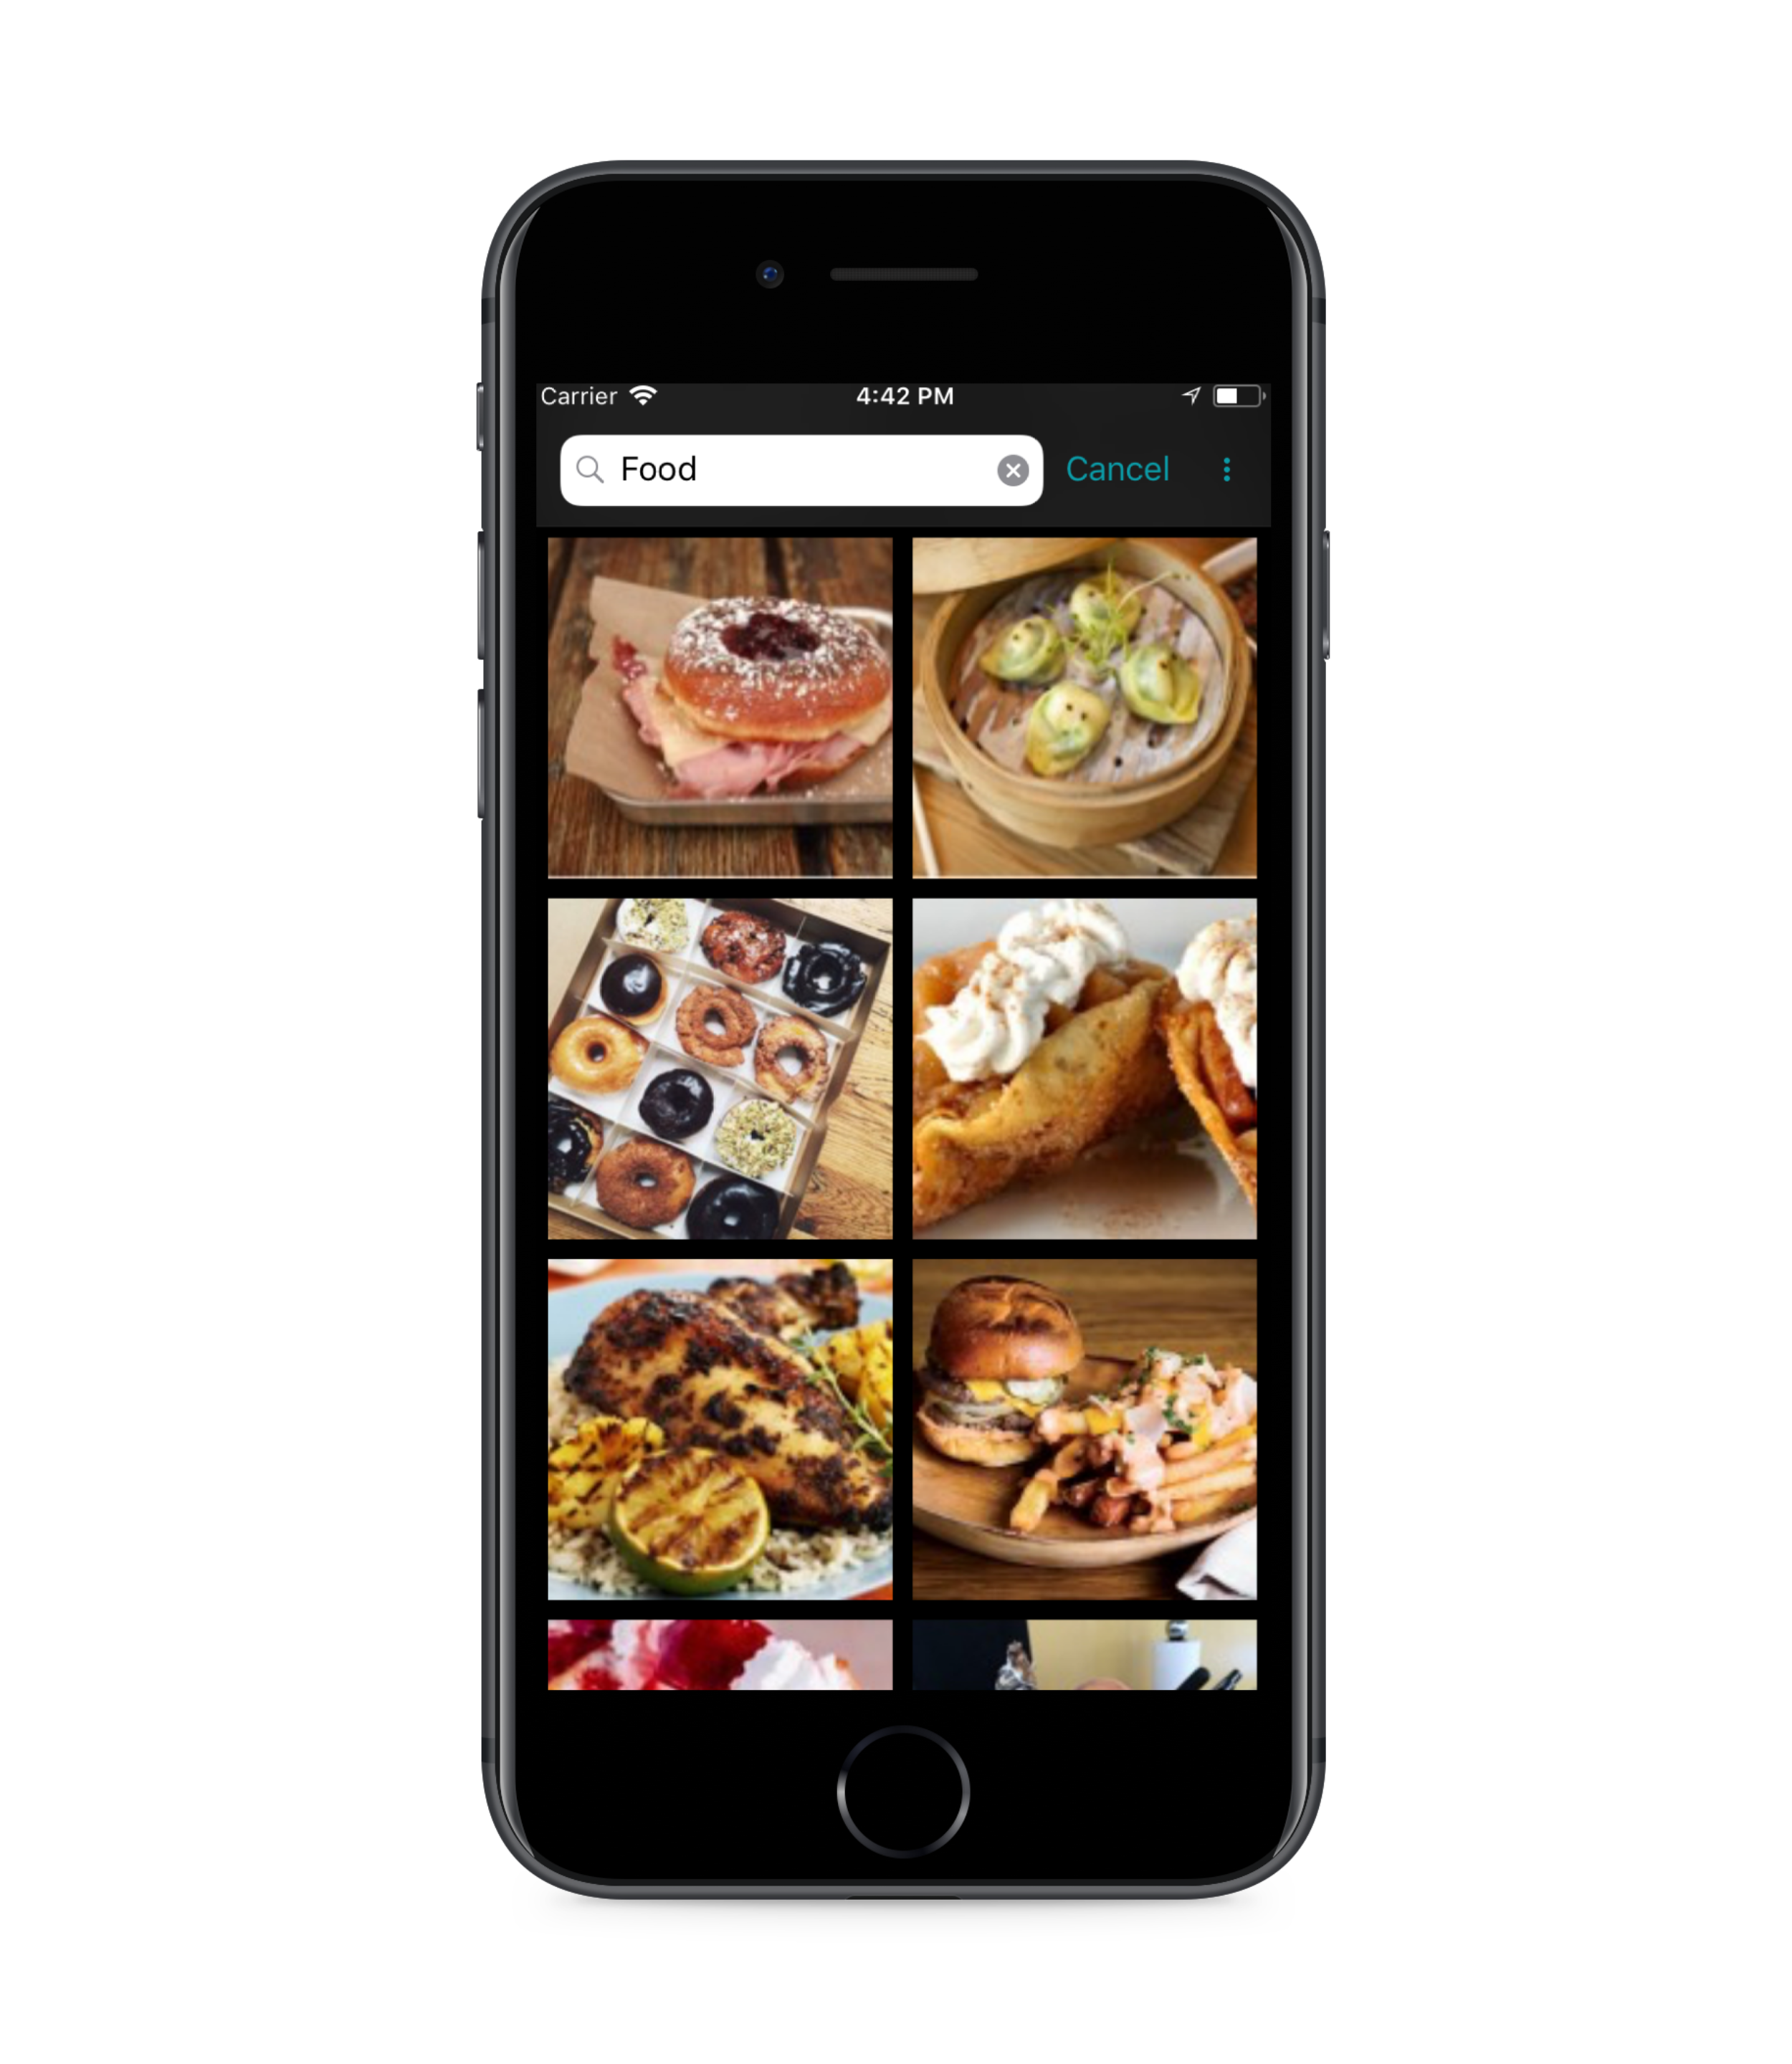 Quickly Find Photos - Retana has powerful photo search capability so you never have to hunt through the camera roll. Search across objects, text, tags, and location to make finding what you need easy and fast.